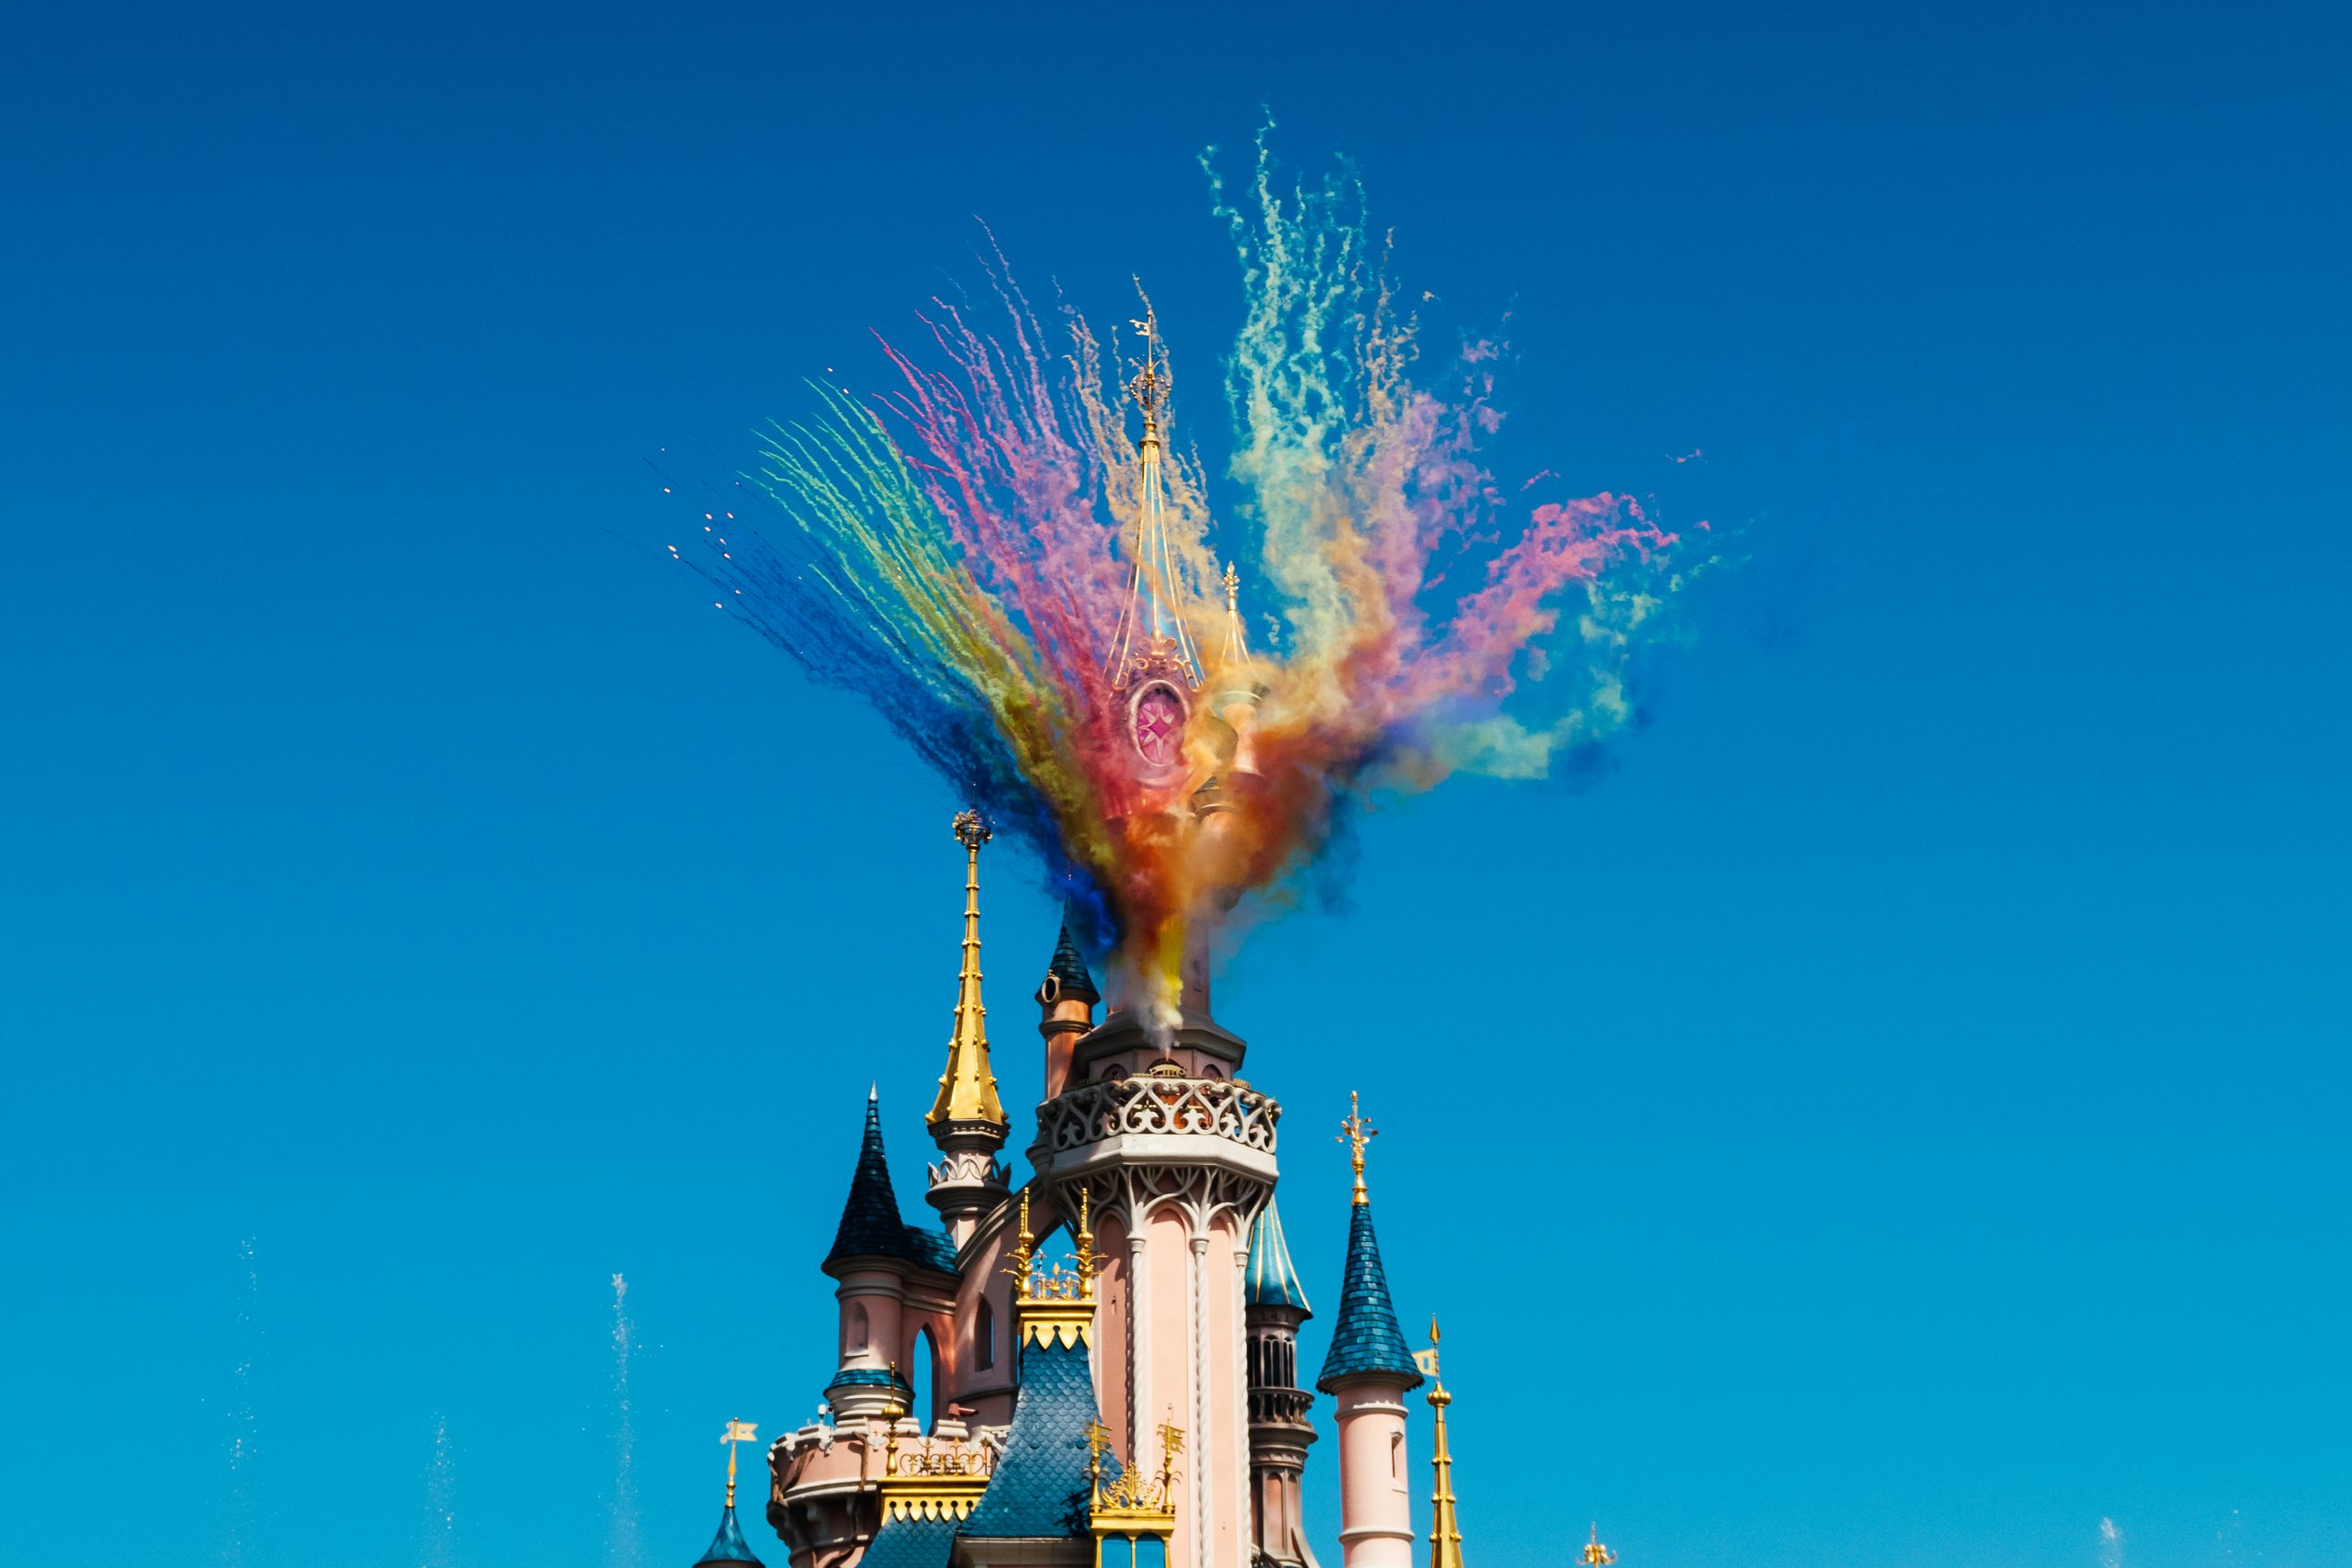 Picture of the castle at Disneyland Paris during the jungle jive show. Coloured smoke coming from the top proper party moment